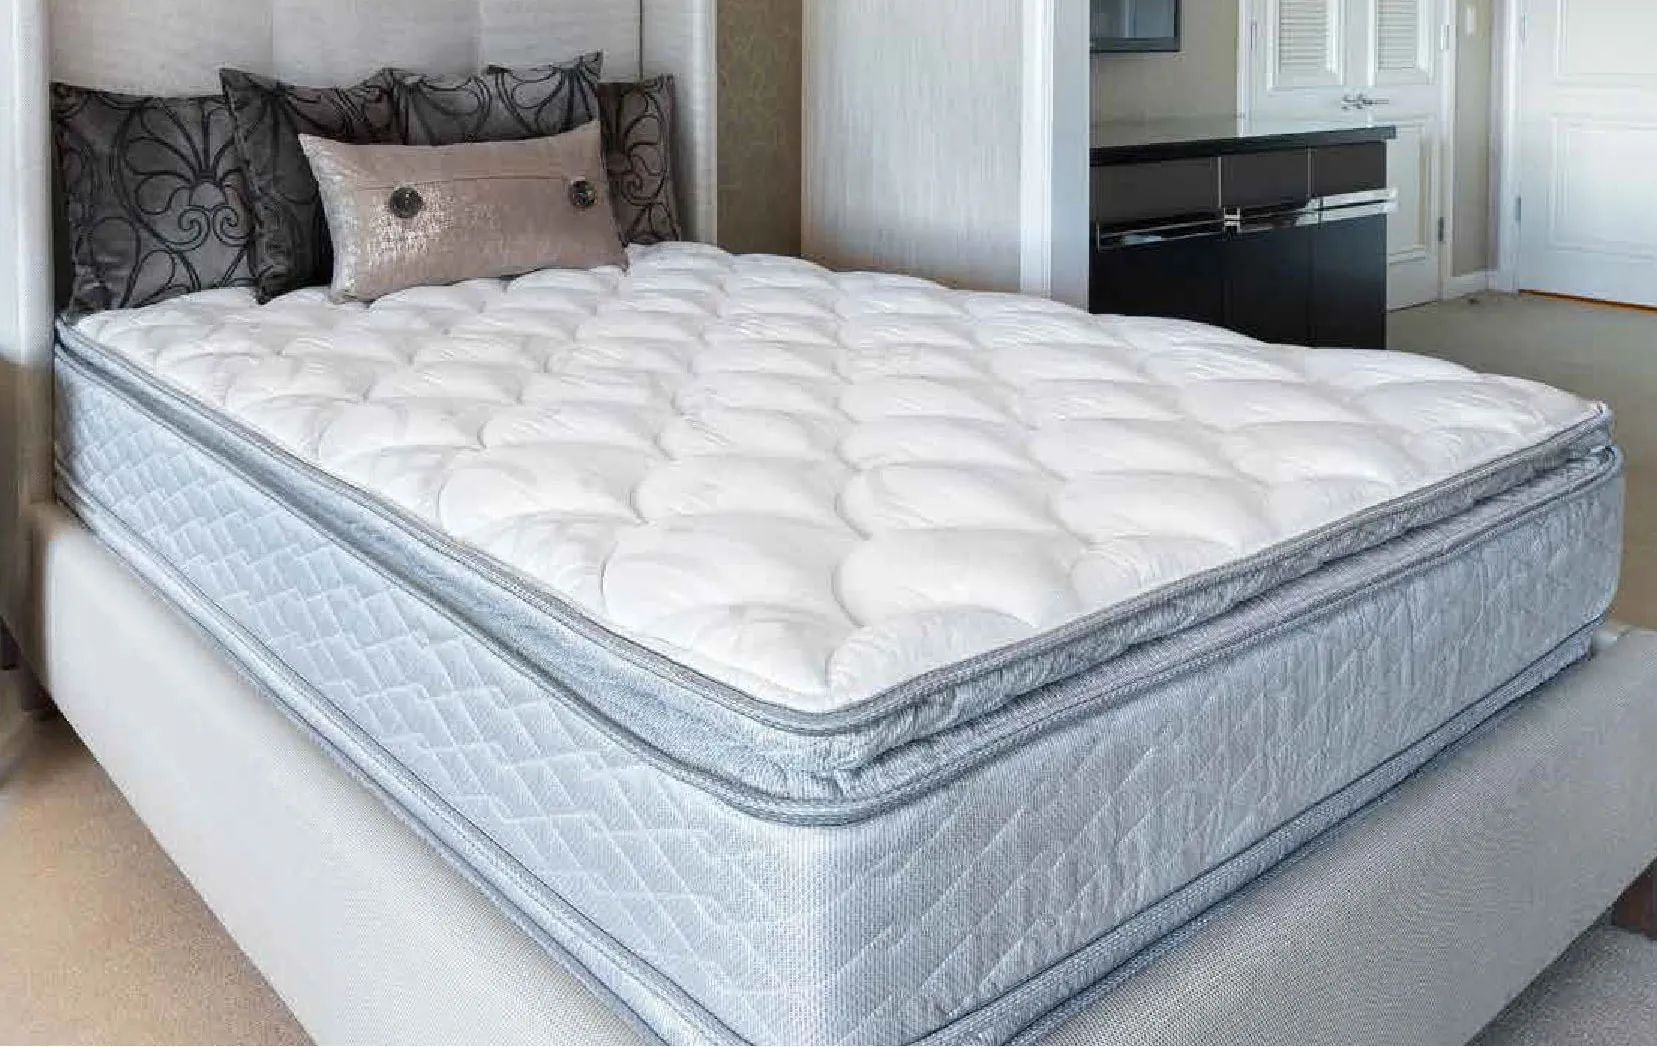 cal king serta perfect sleeper hotel congressional suite supreme ii euro pillow top double sided 13 inch mattress